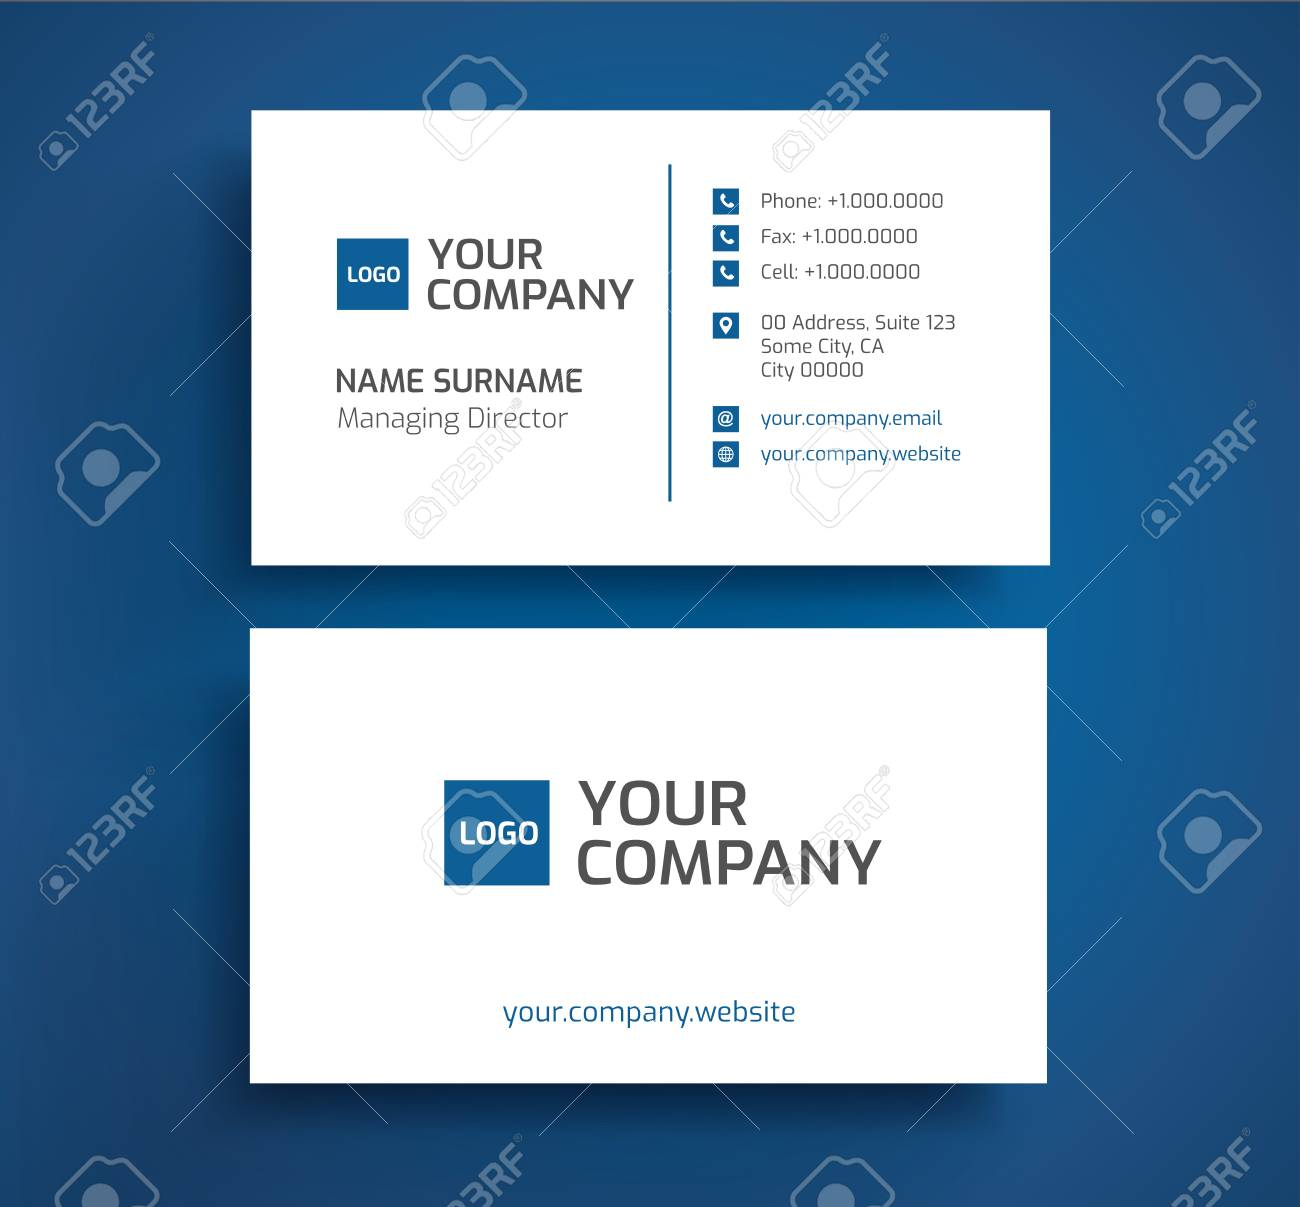 Stylish Business Card Template Vector Blue And White Color